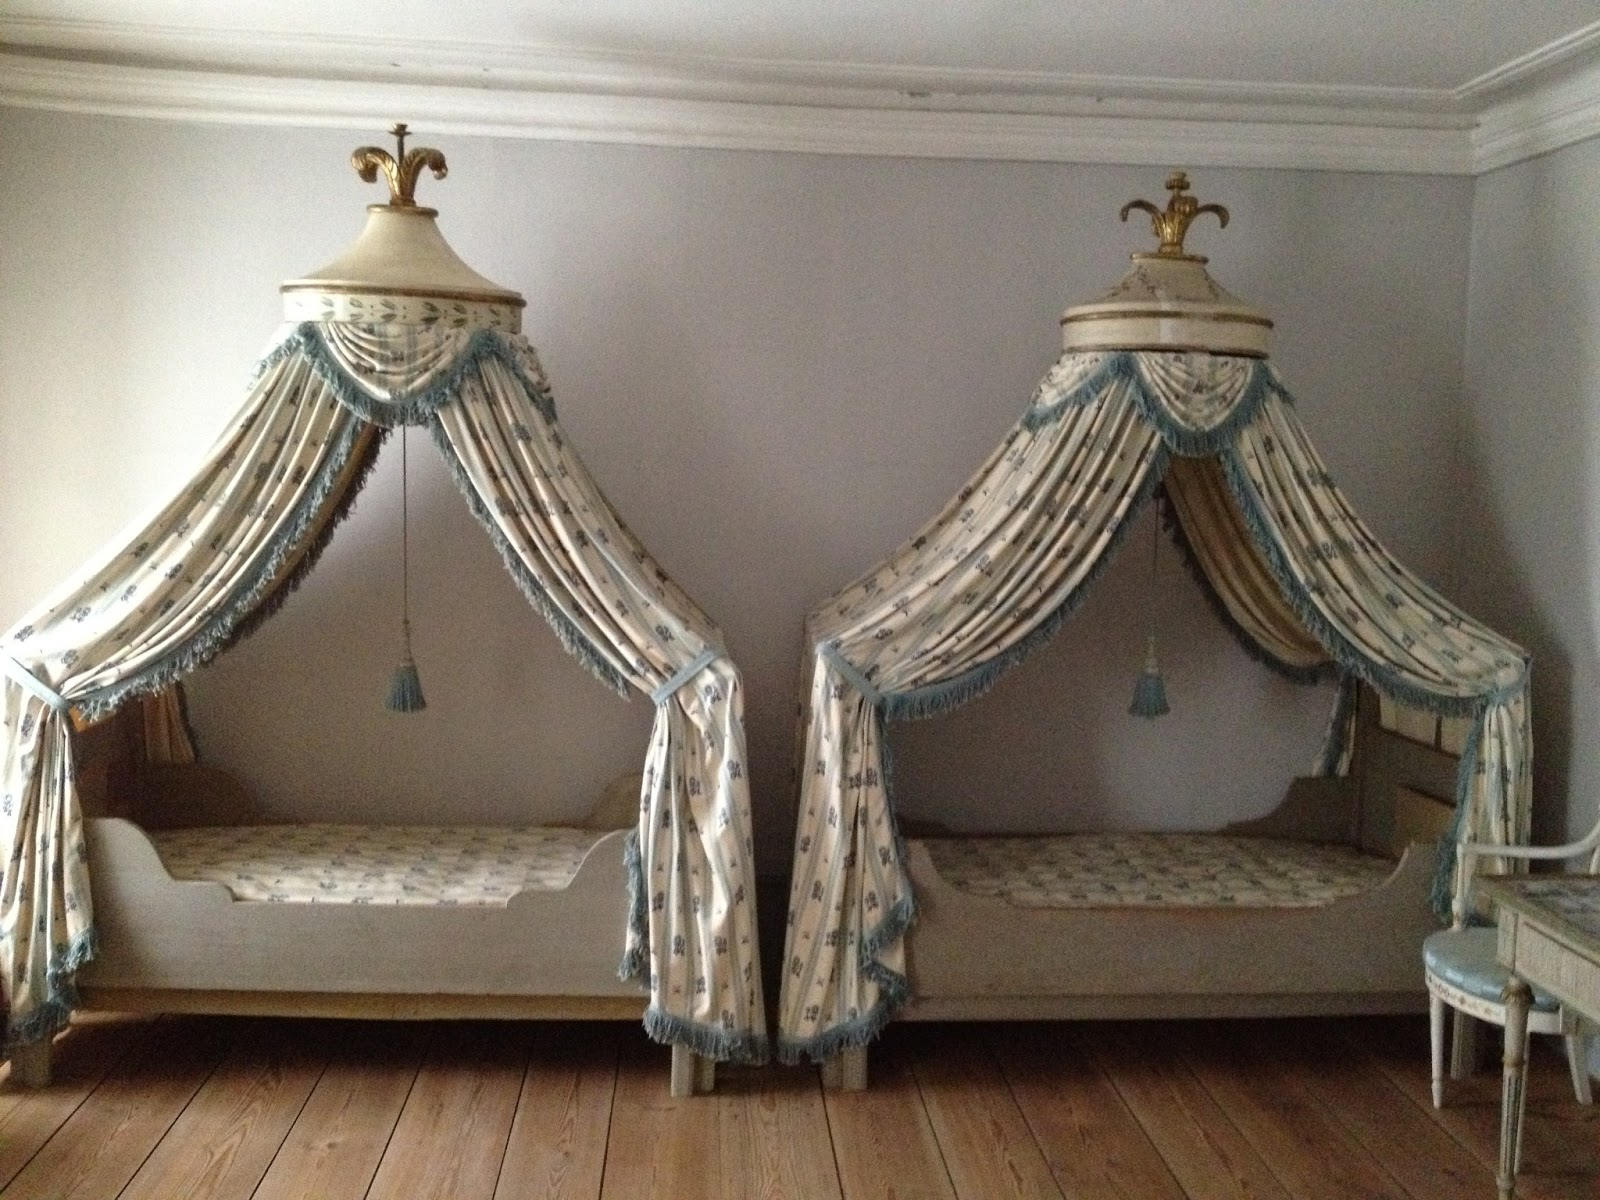 images crop drape corbis abode getty coronet to how documentary a crown canopy bed drapes make